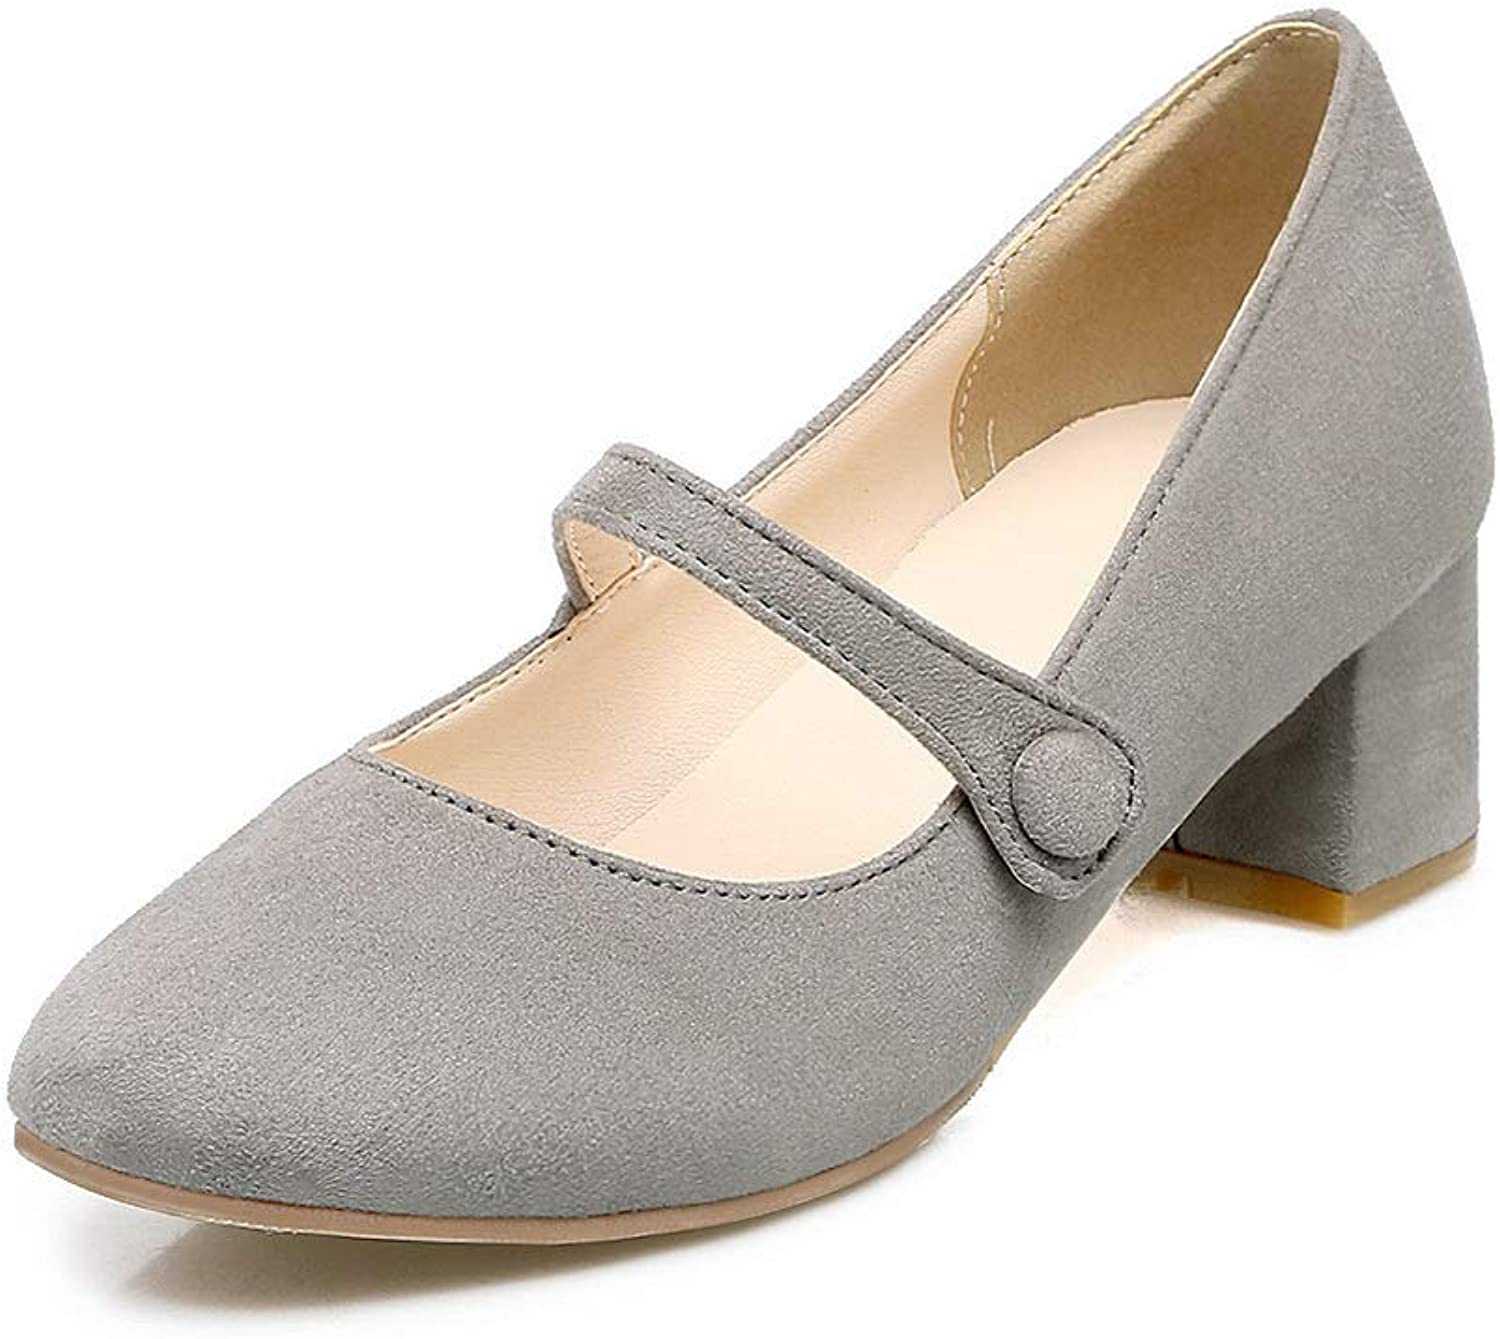 BalaMasa Womens Casual Business Solid Urethane Pumps shoes APL10556